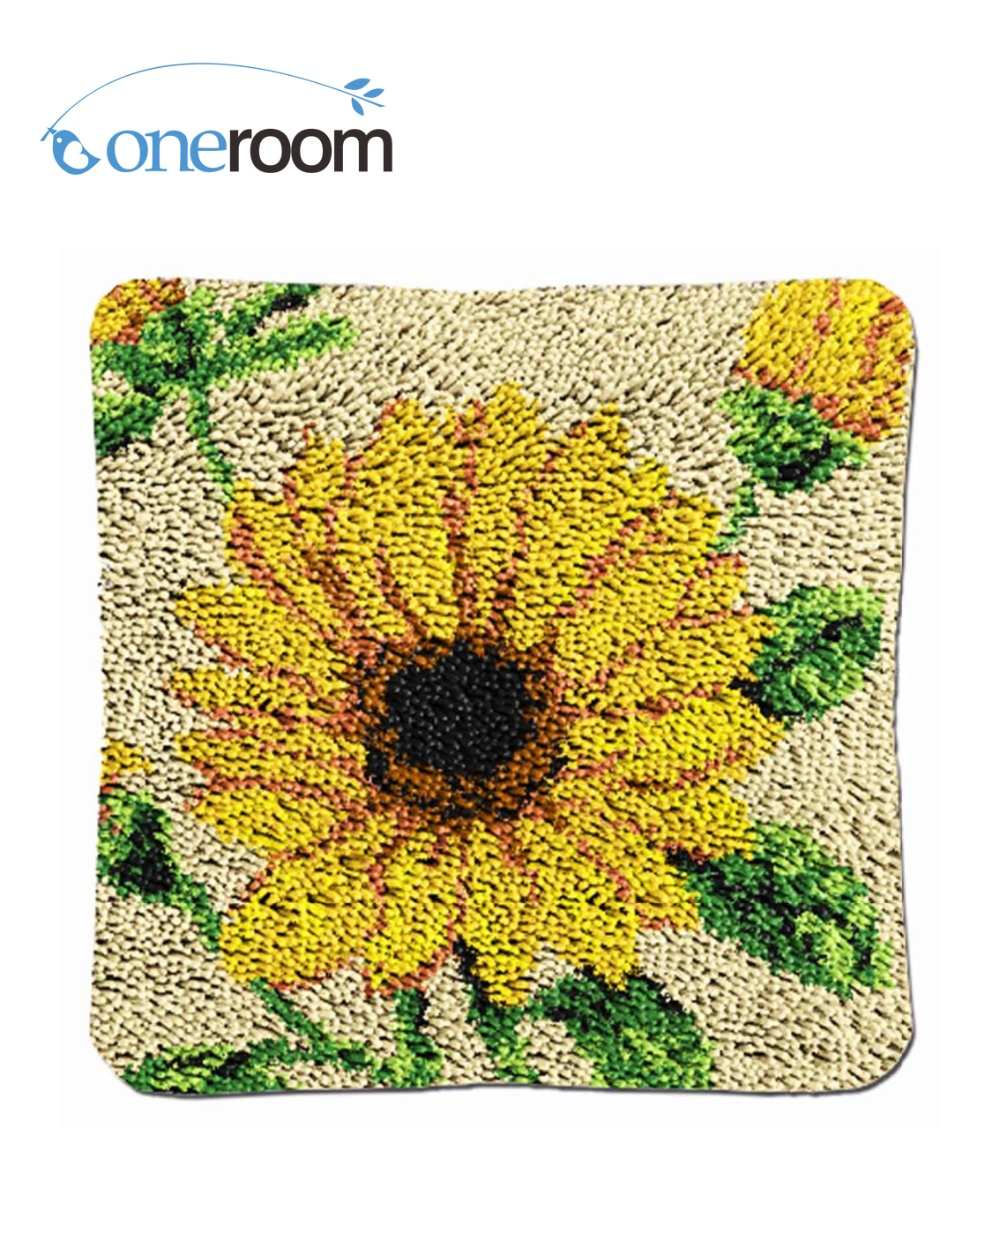 Oneroom BZ081 Sunflowers Hook Rug Kit Pillow DIY Unfinished Crocheting Yarn  Mat Latch Hook Rug Kit